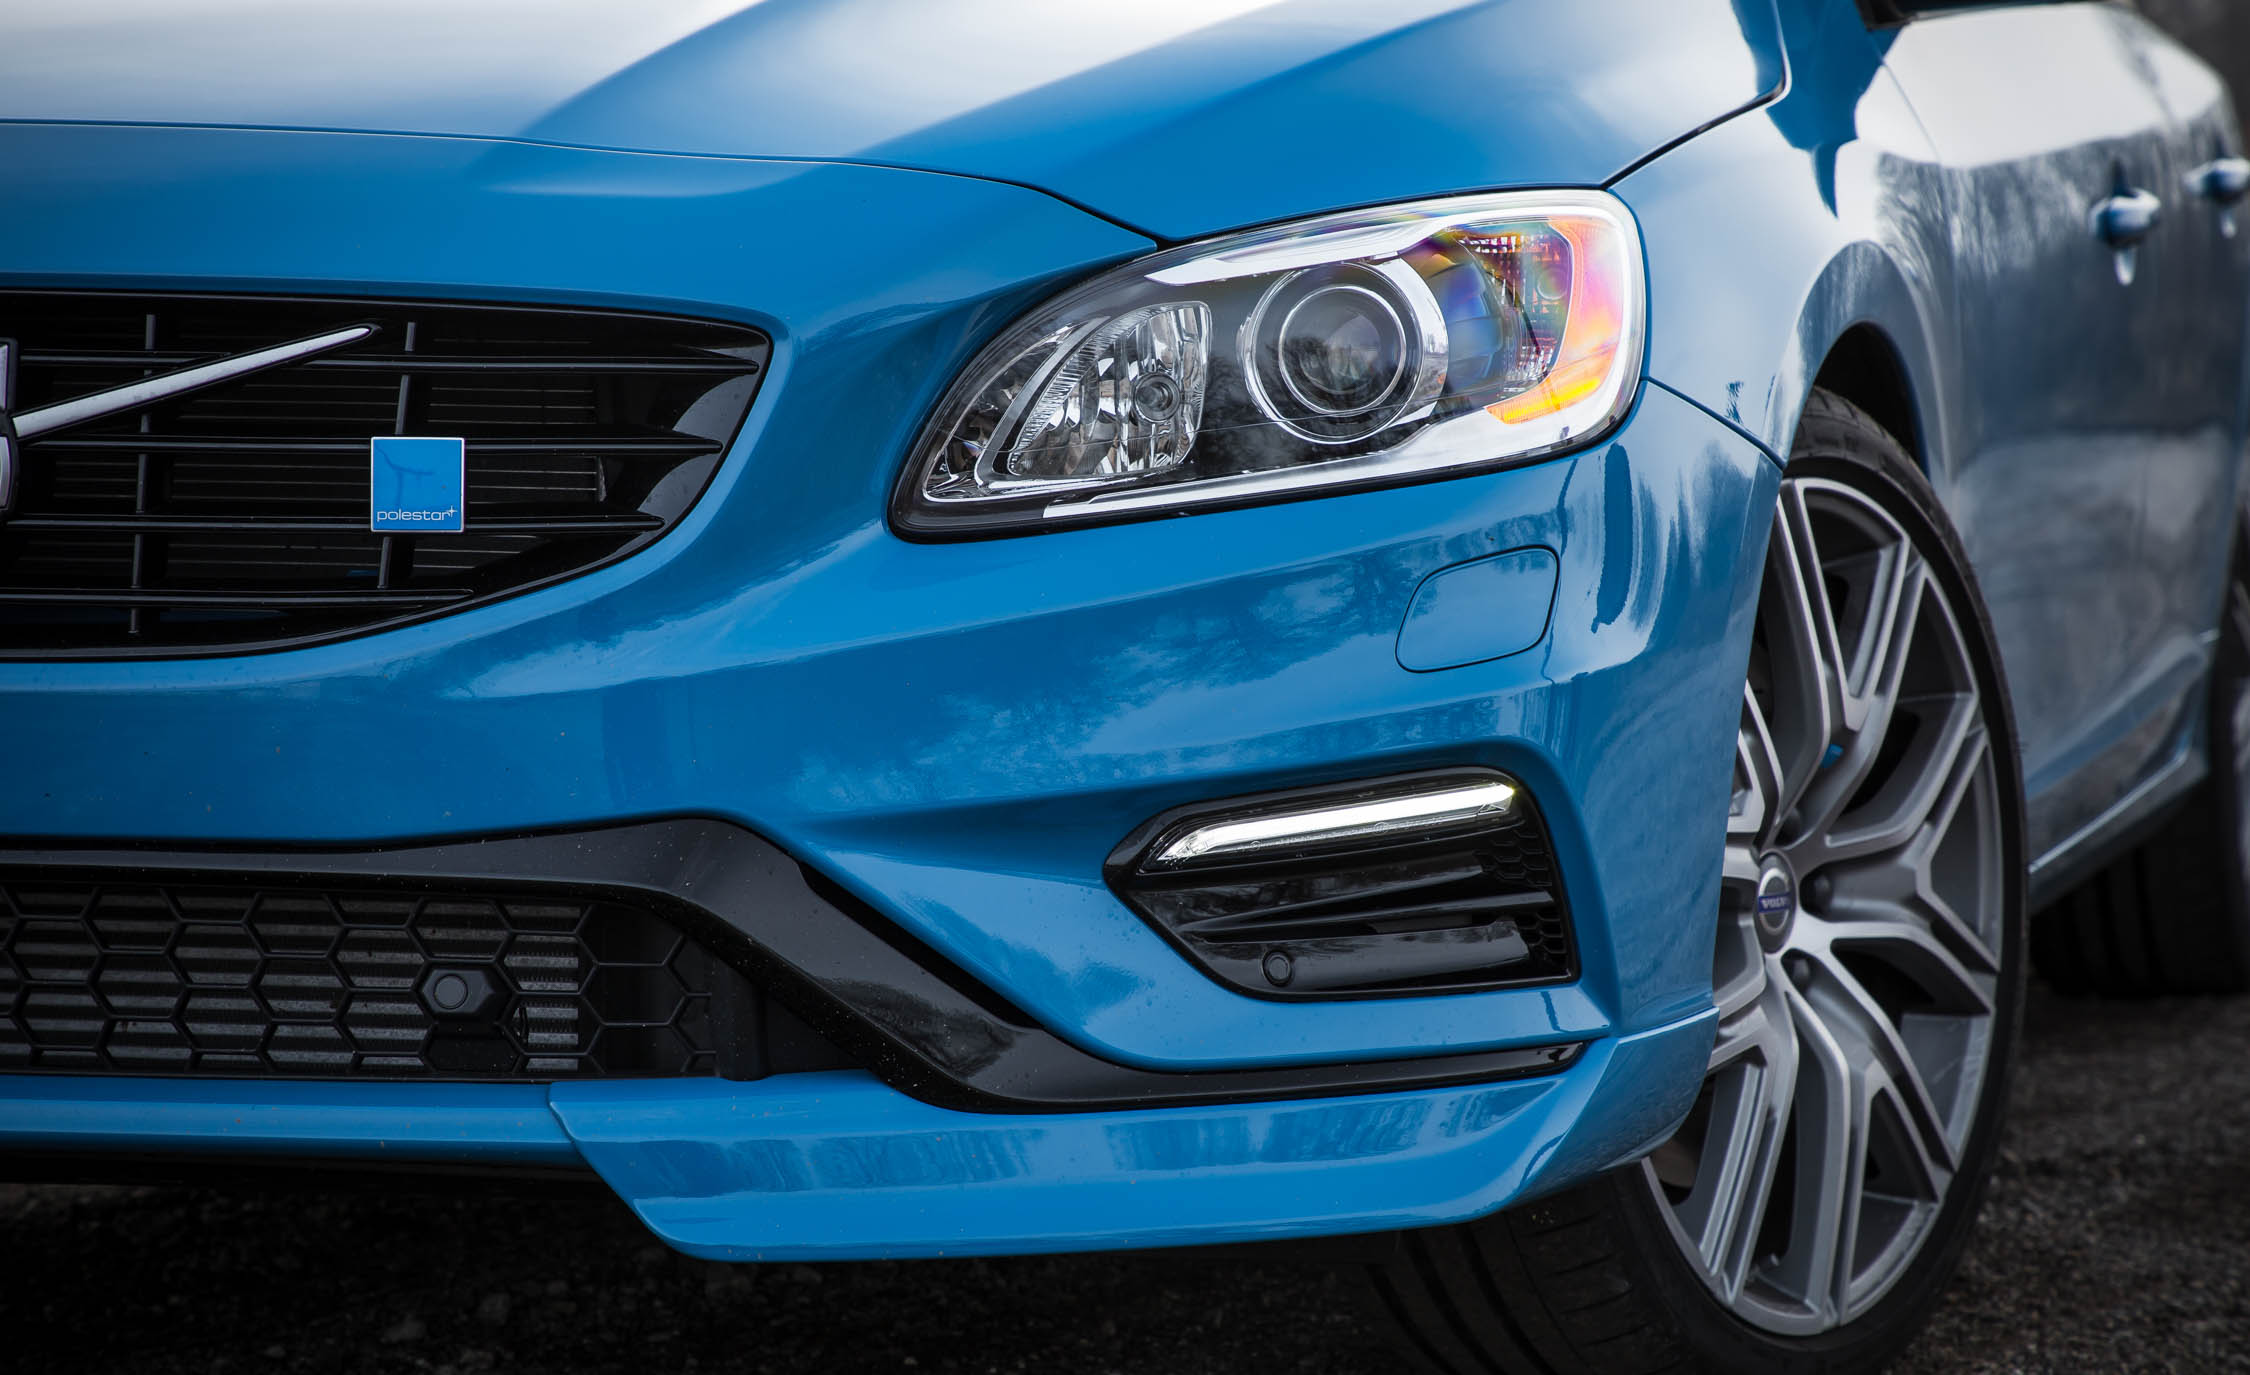 2017 Volvo V60 Polestar Exterior View Headlight And Bumper (Photo 11 of 53)